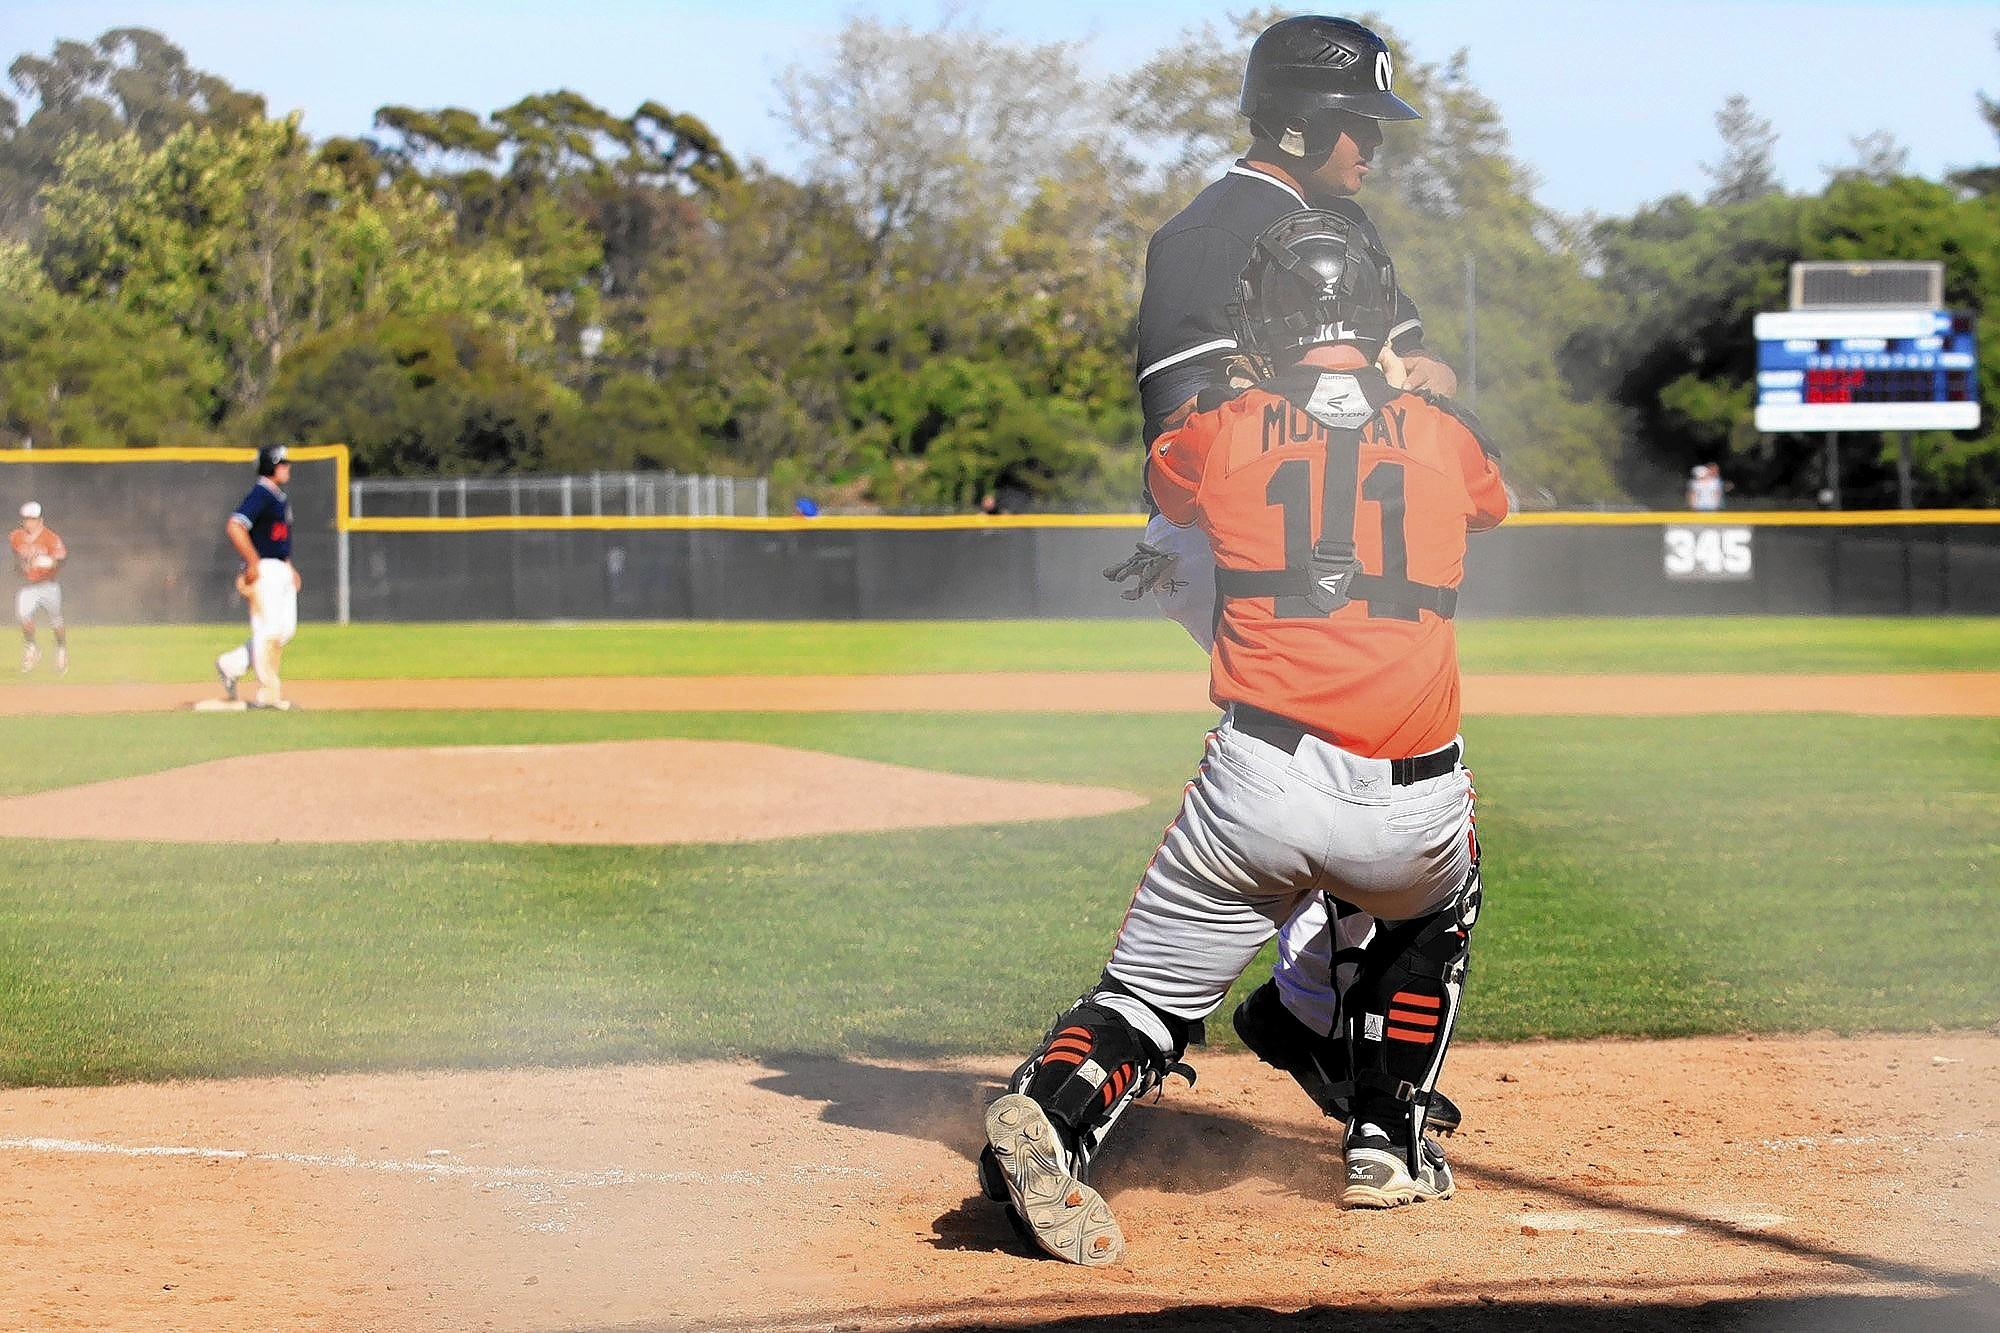 Huntington Beach High catcher Tyler Murray (11) tags out Newport Harbor's Keith Marshall completing a triple play to close out the fourth inning in a Sunset League game on Tuesday.